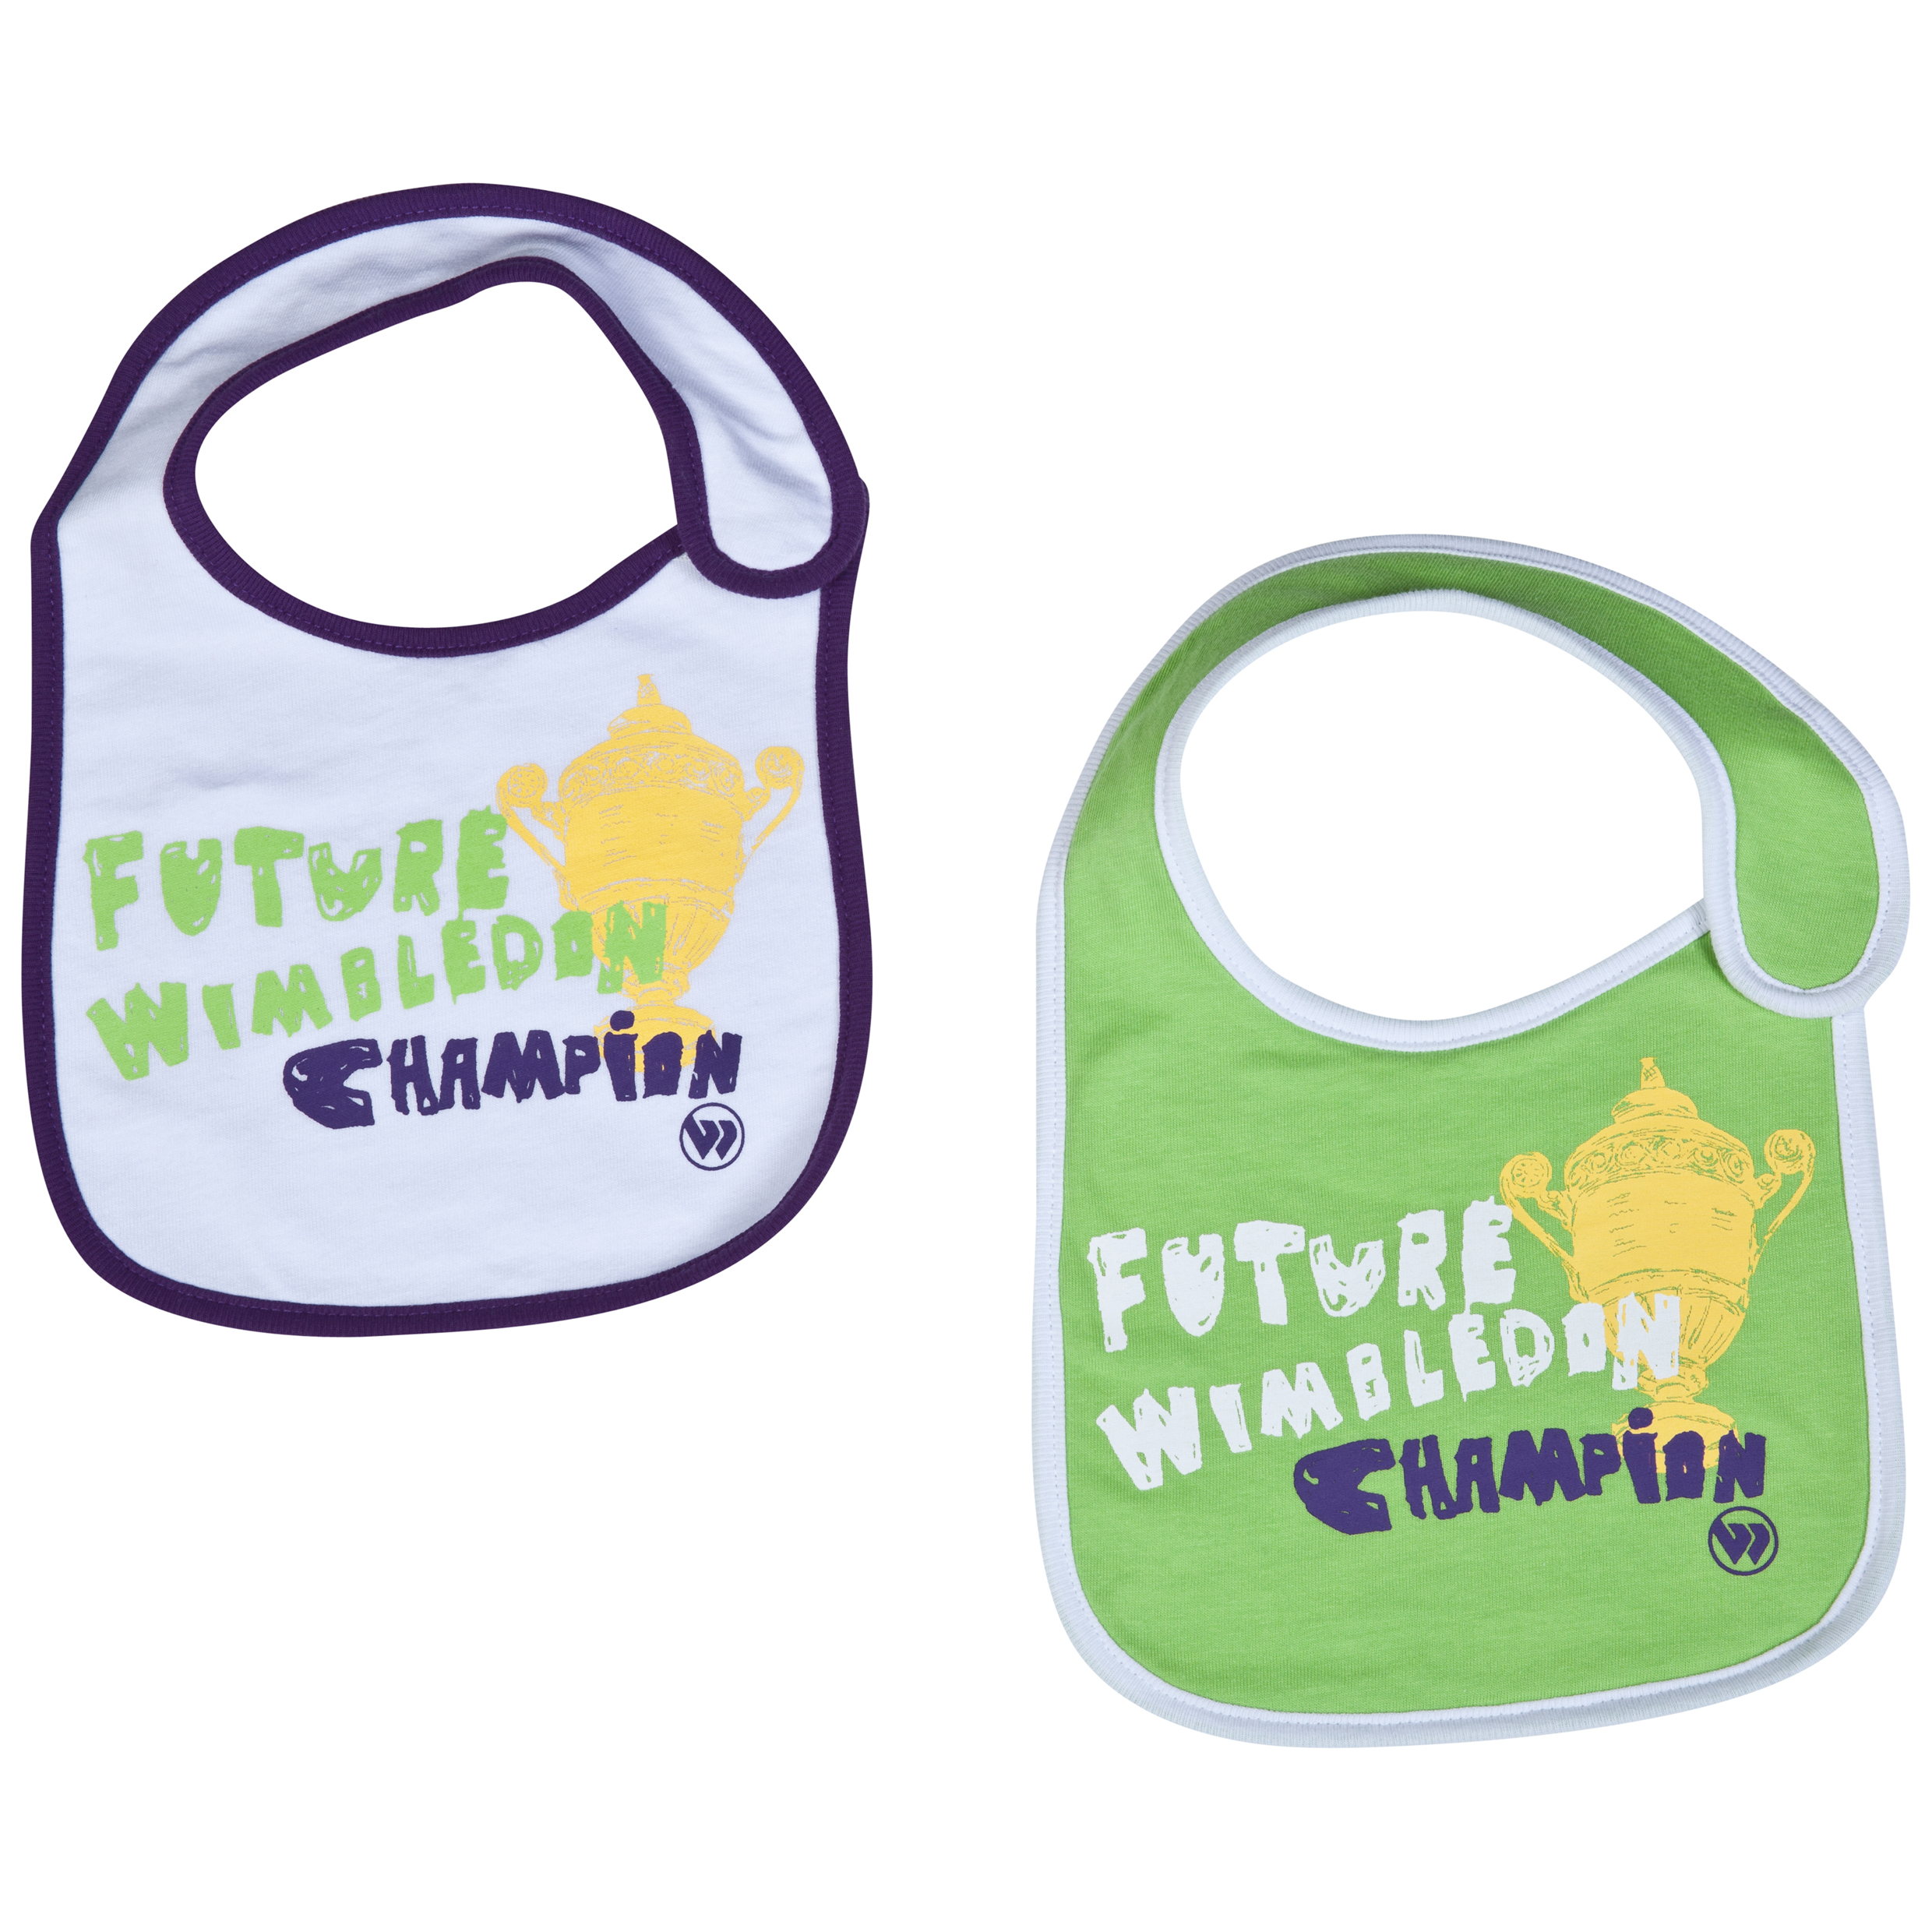 Wimbledon 2pk Future Wimbledon Champion Bibs - Infants White